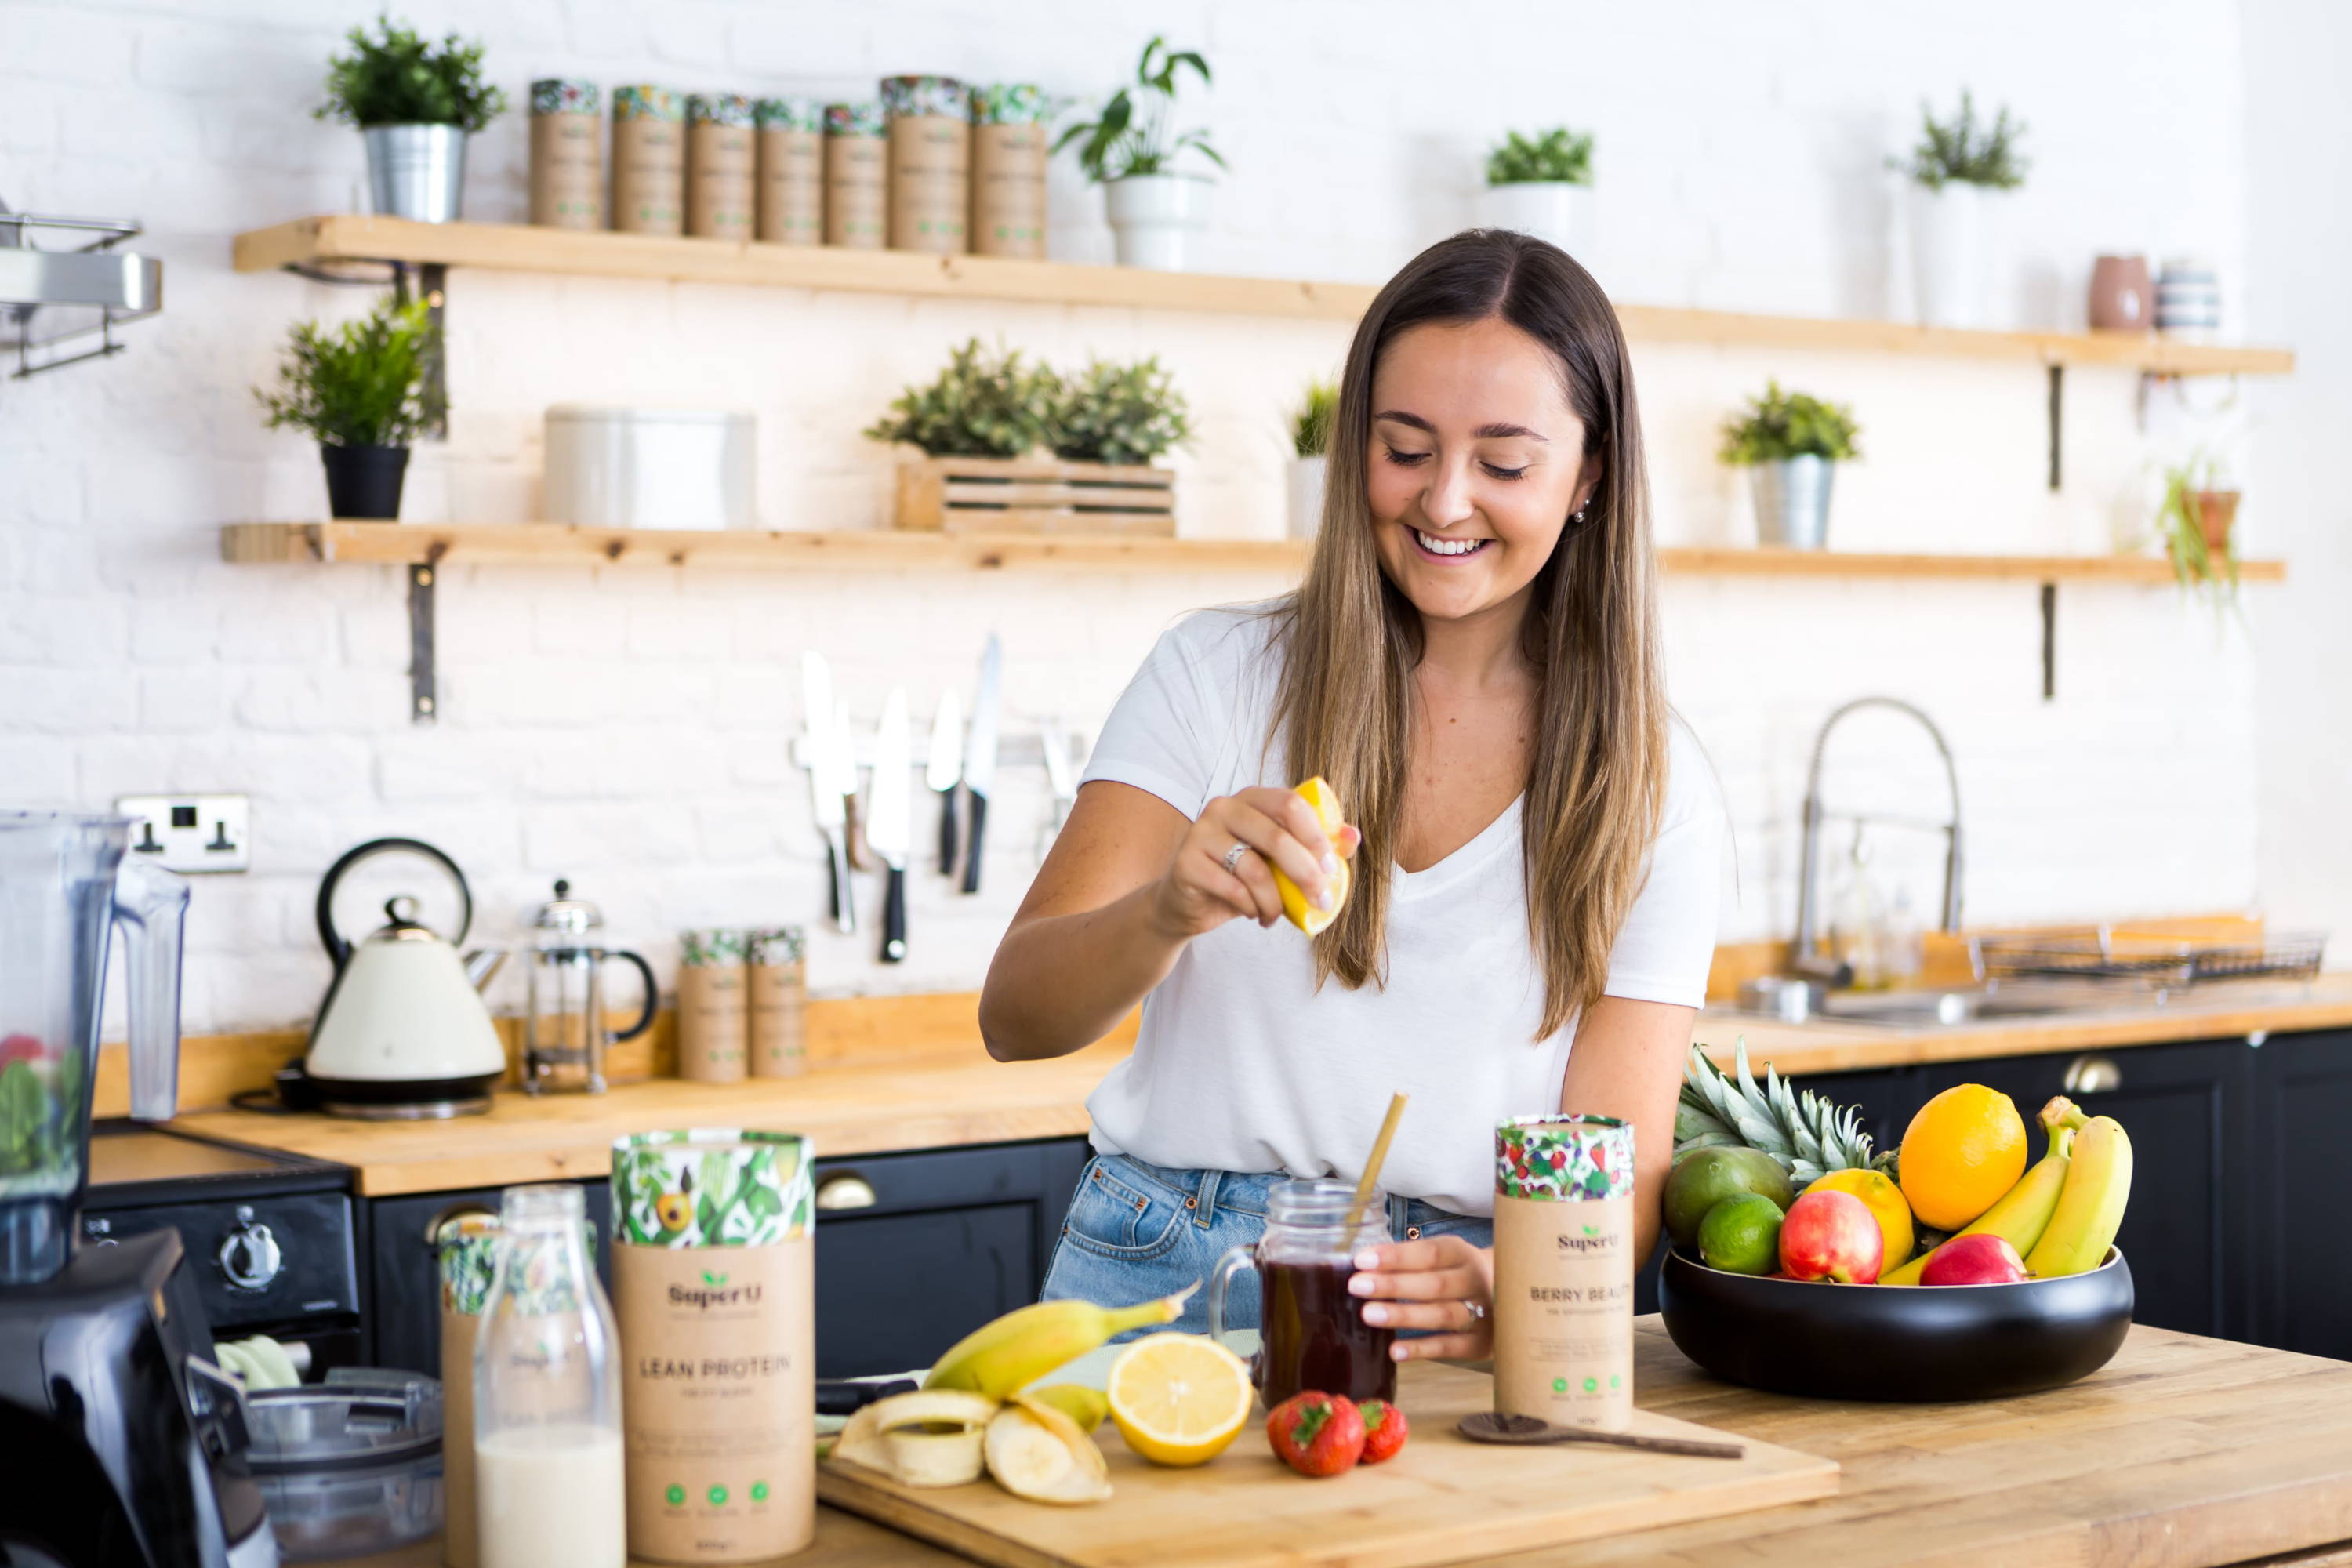 healthy girl making a nutritious vegan smoothie  with fresh fruit and super u superfood blends